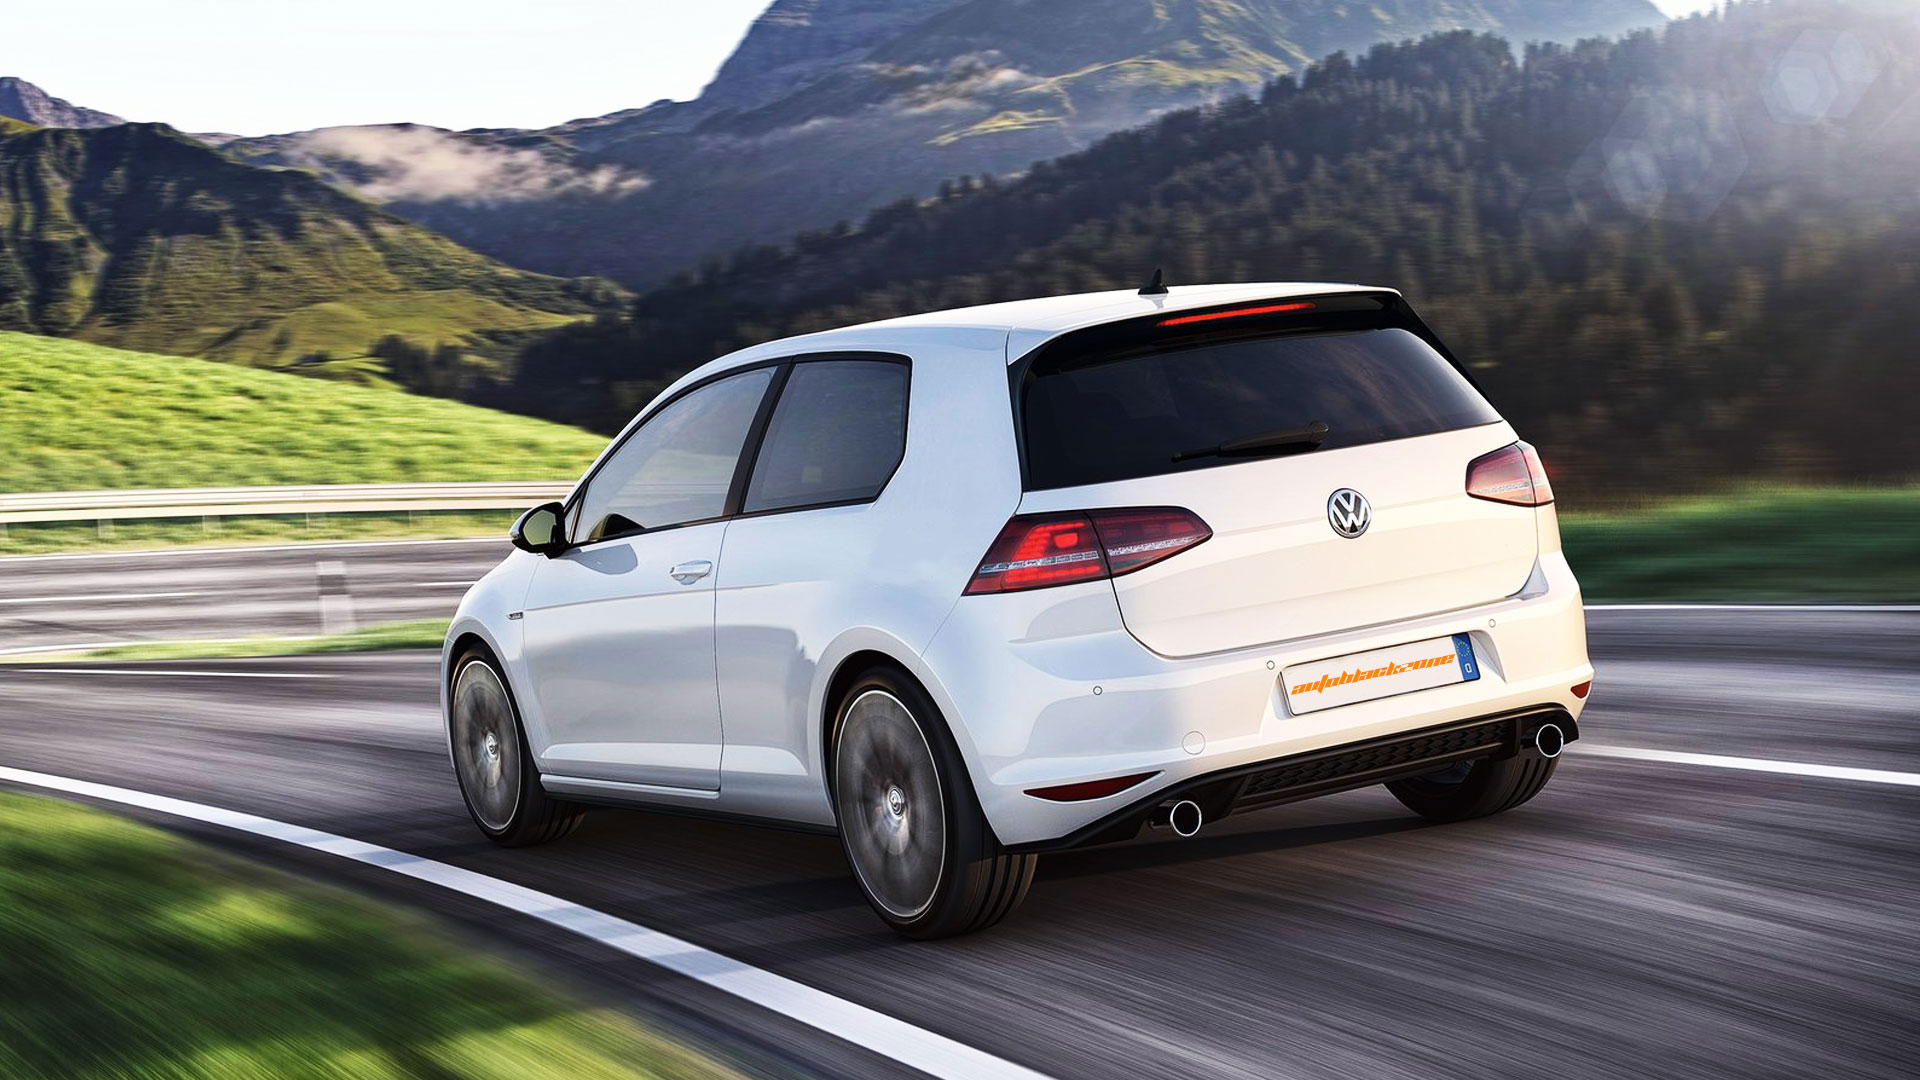 2014 vw golf gti 2014 HD Wallpaper